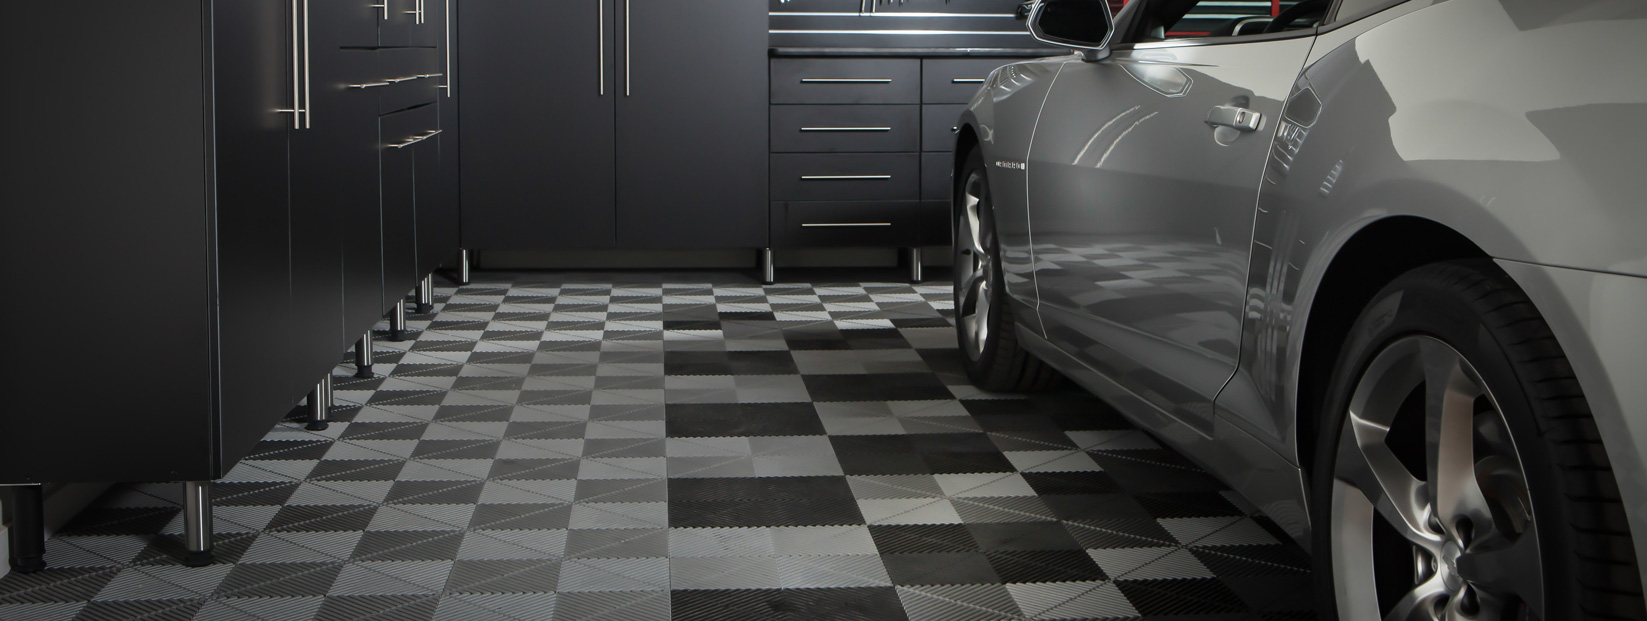 Garage Floor Tiles Philadelphia